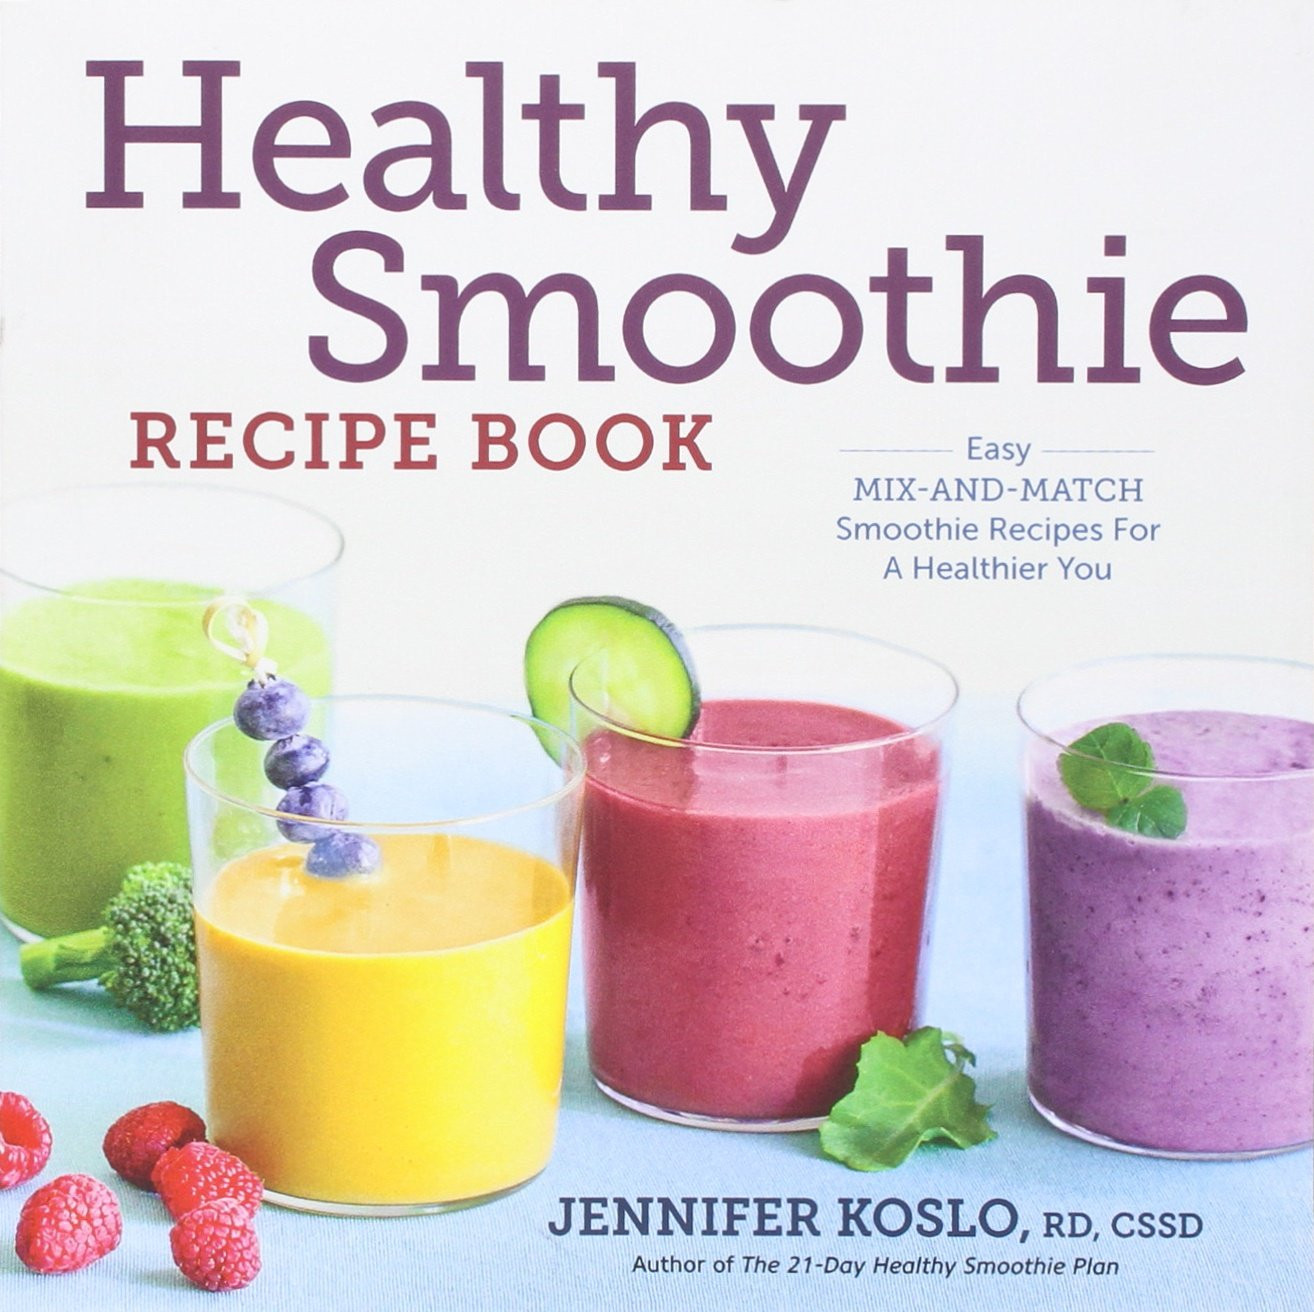 Easy And Healthy Smoothie Recipes  Cheapest copy of Healthy Smoothie Recipe Book Easy Mix